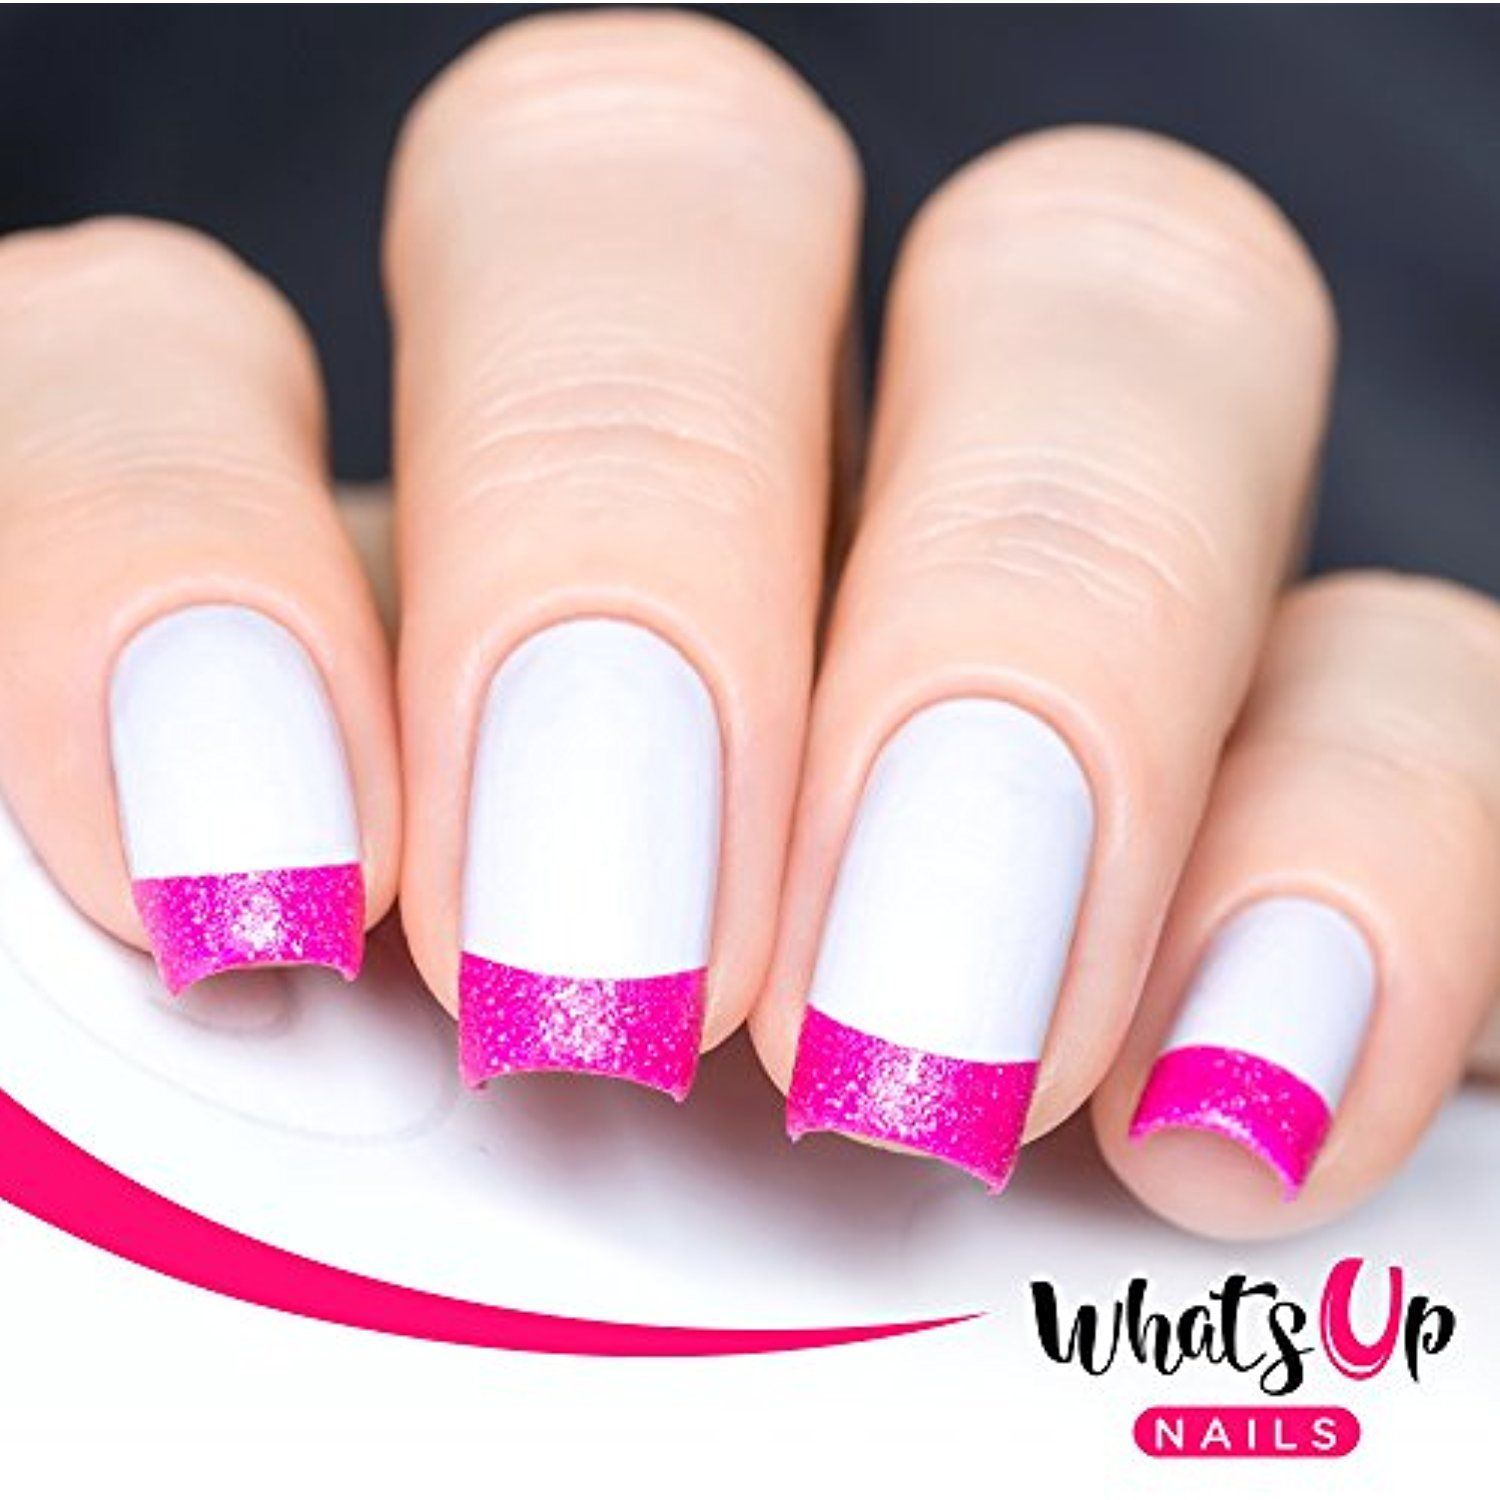 Whats Up Nails - French Tip Tape Nail Stencils Stickers Vinyls for ...